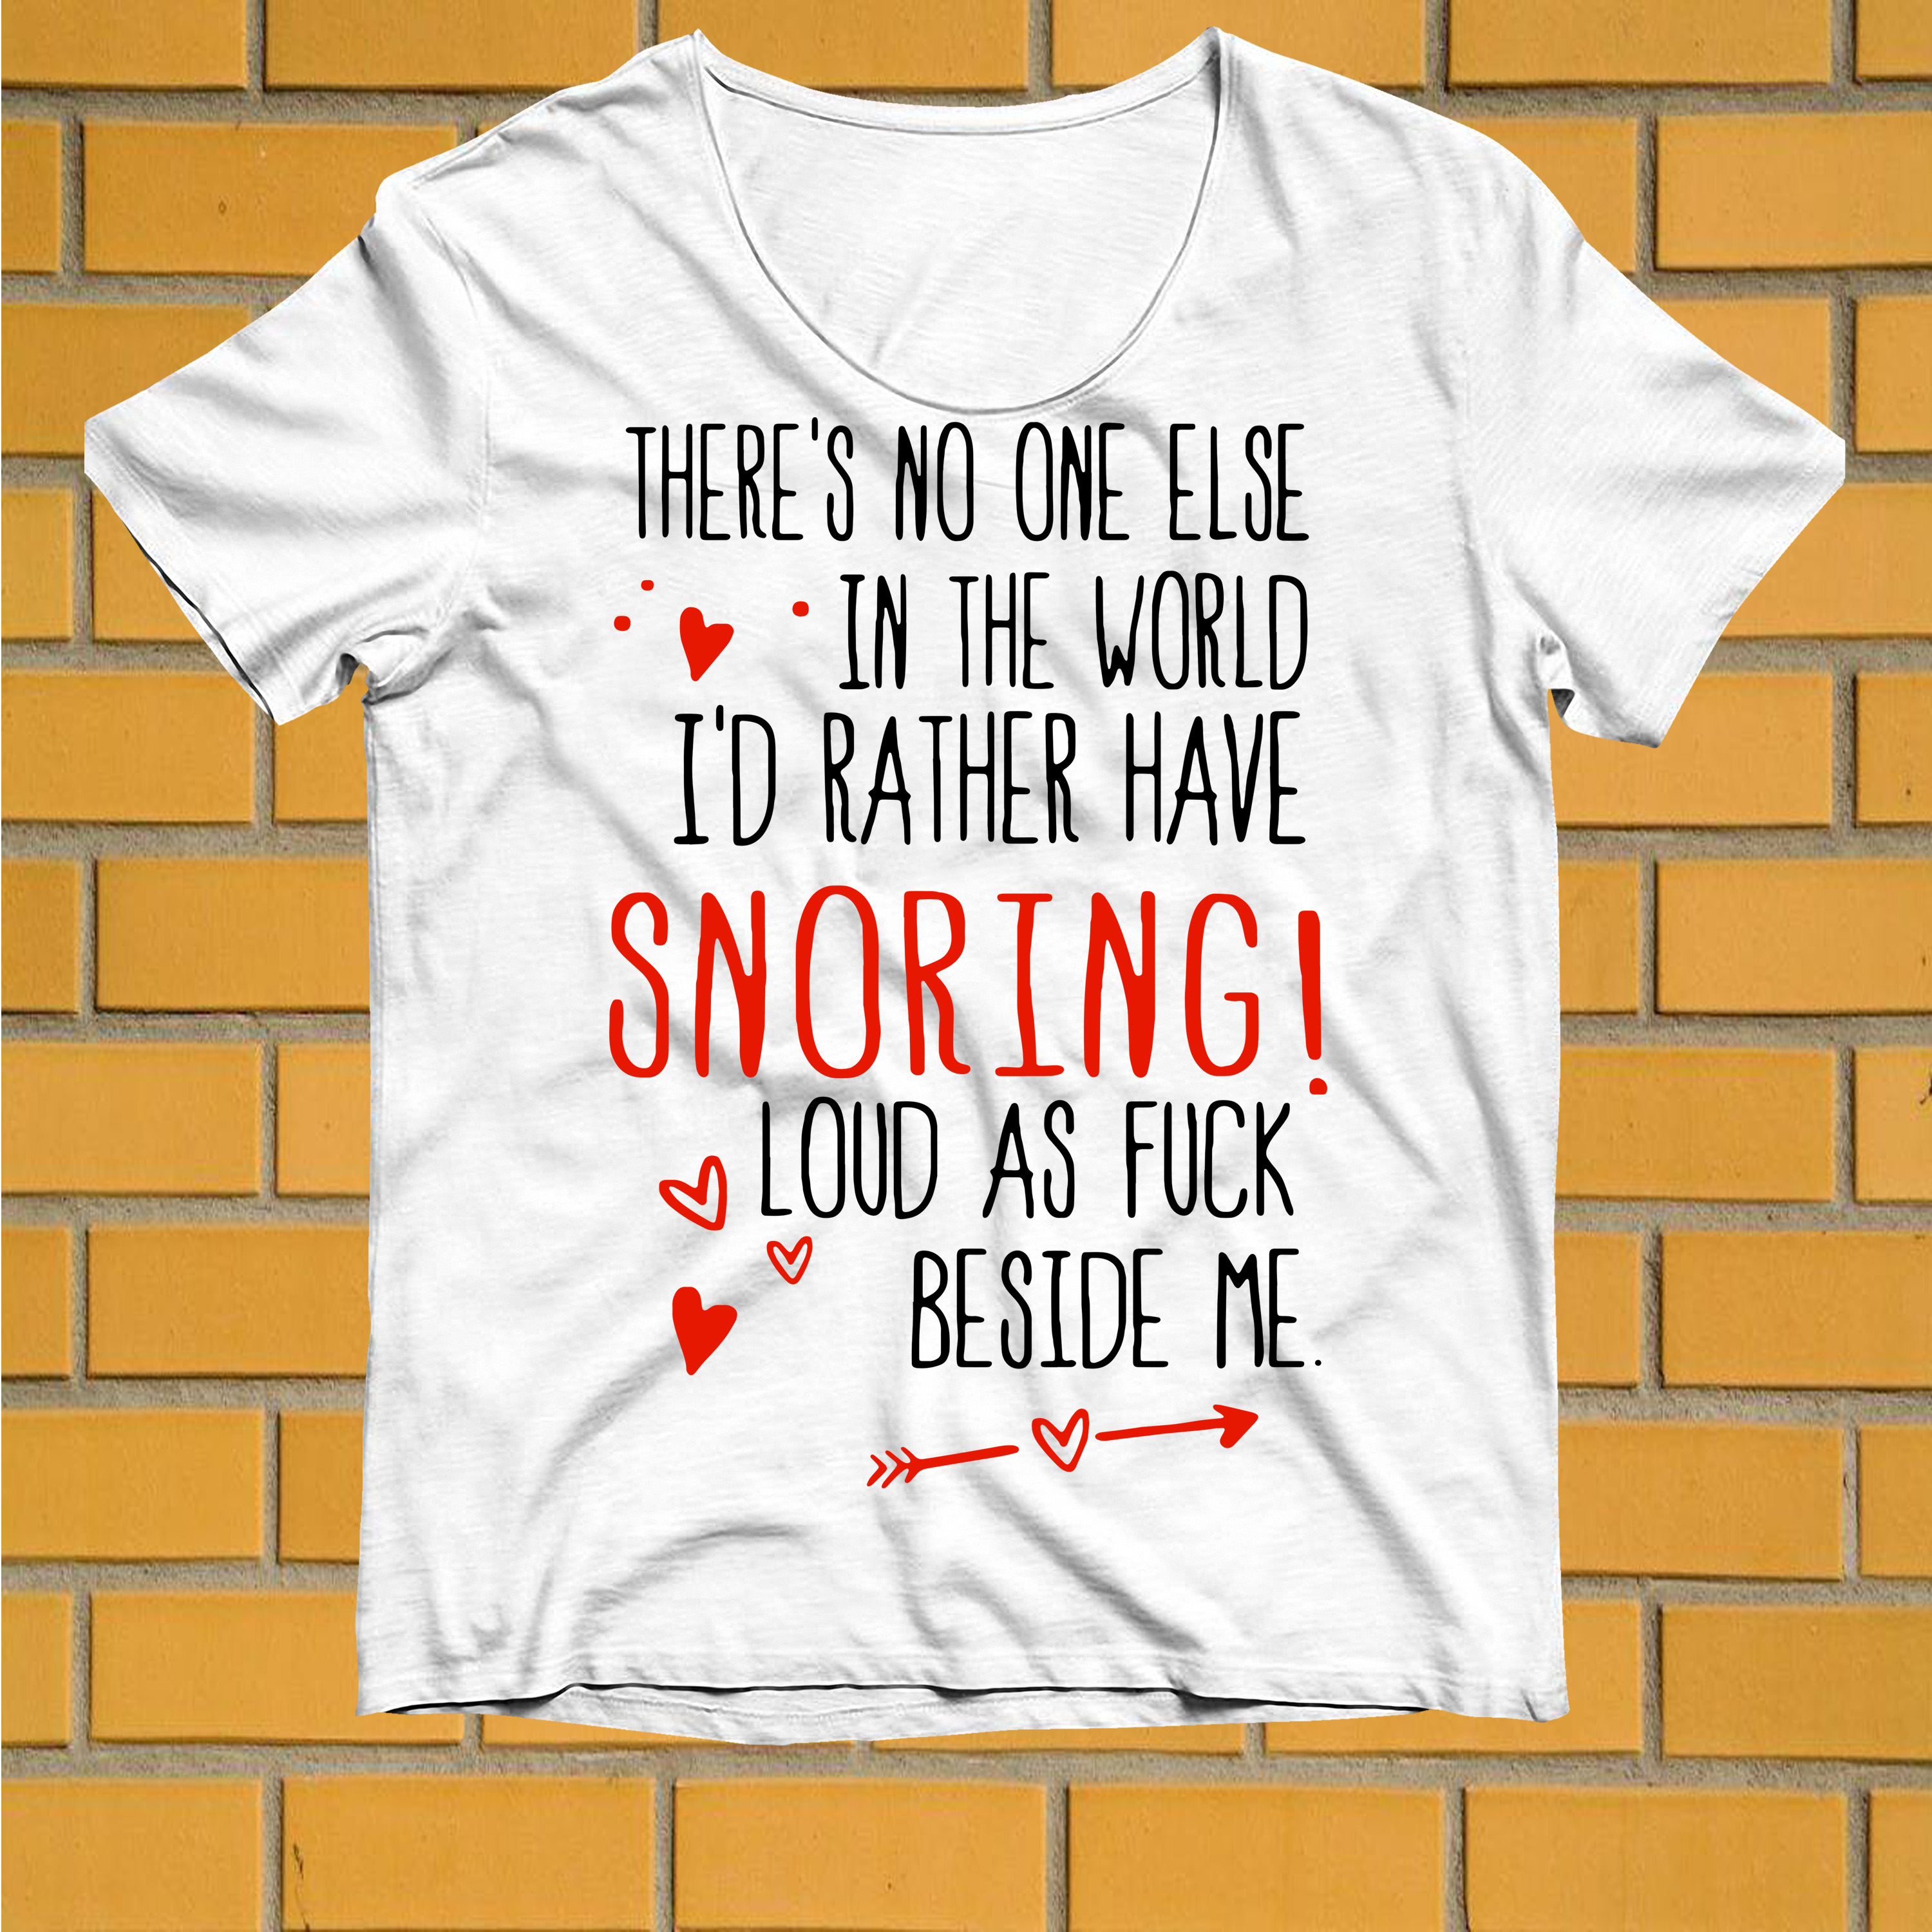 There's no one else in the world I'd rather have snoring loud as fuck beside me shirt